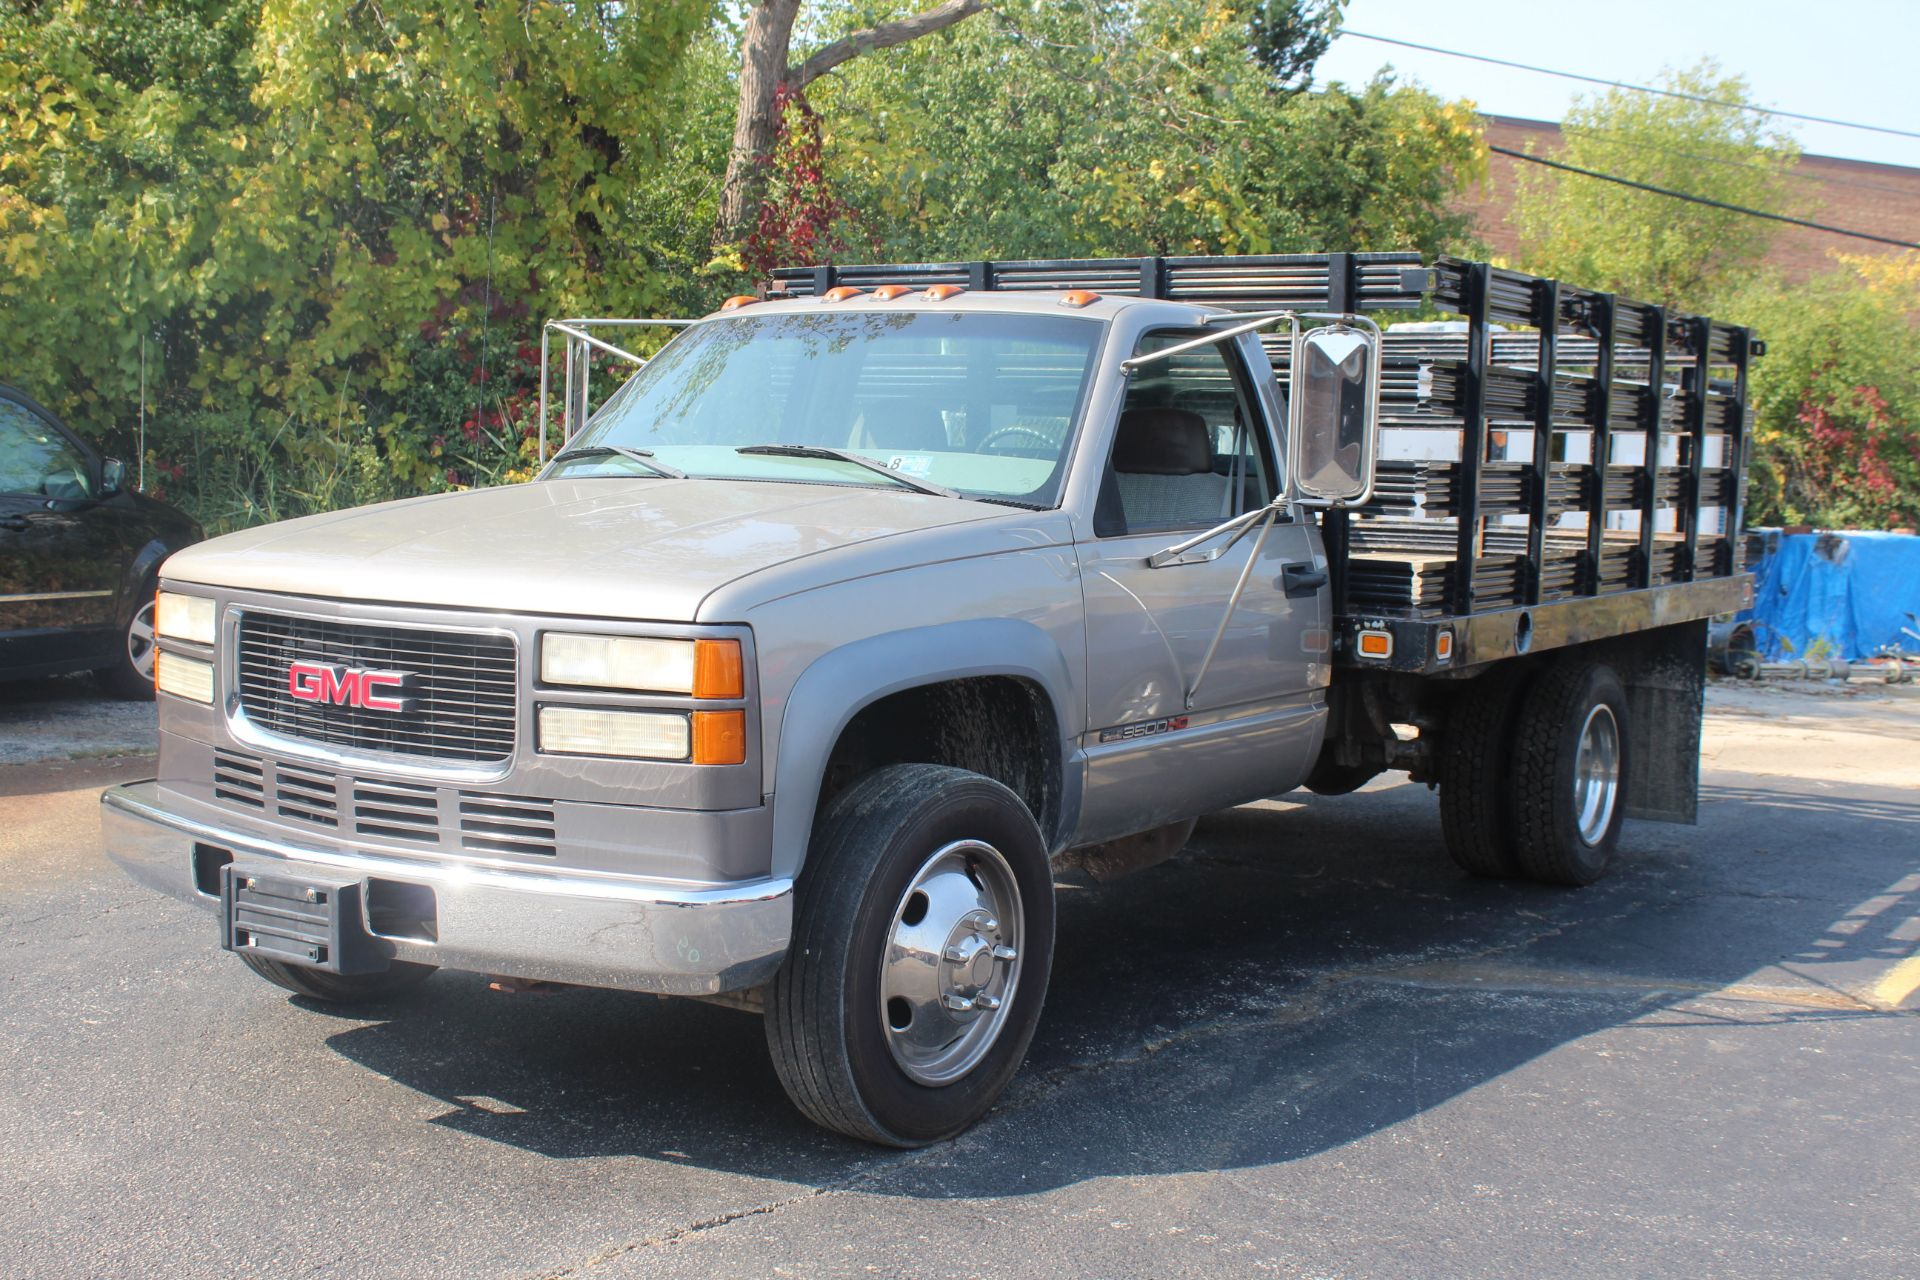 Lot 6 - 1999 GMC SIERRA 3500 DUALLY STAKE BED TRUCK, 7.4L V-8, VIN 1GDKC34J1XF056858, 109,255 MILES SHOWN ON